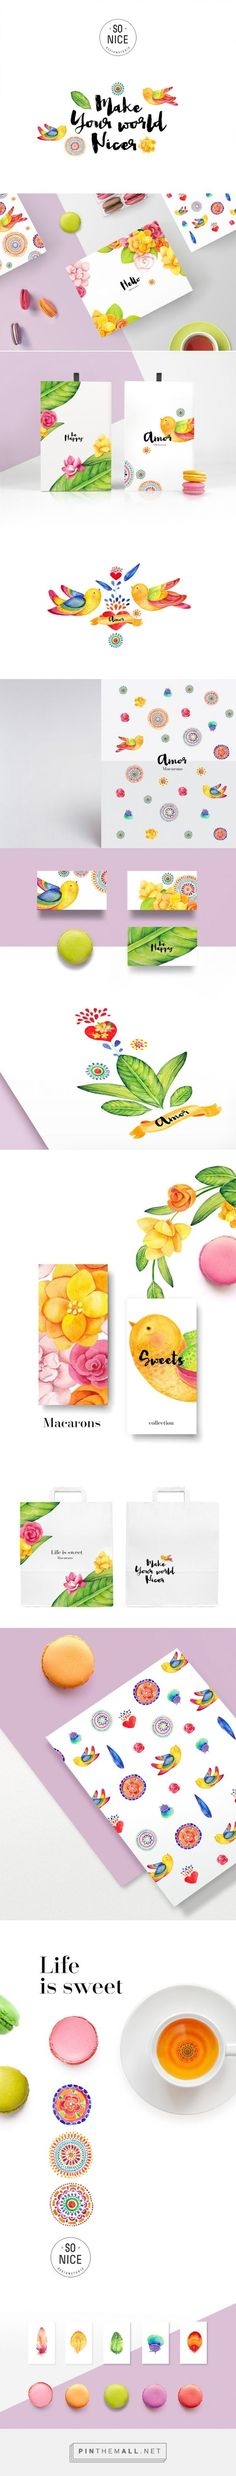 Life Is Sweet #Macarons #concept #packaging designed by @SoNiceDesign ? - http://www.packagingoftheworld.com/2015/04/life-is-sweet-macarons-concept.html